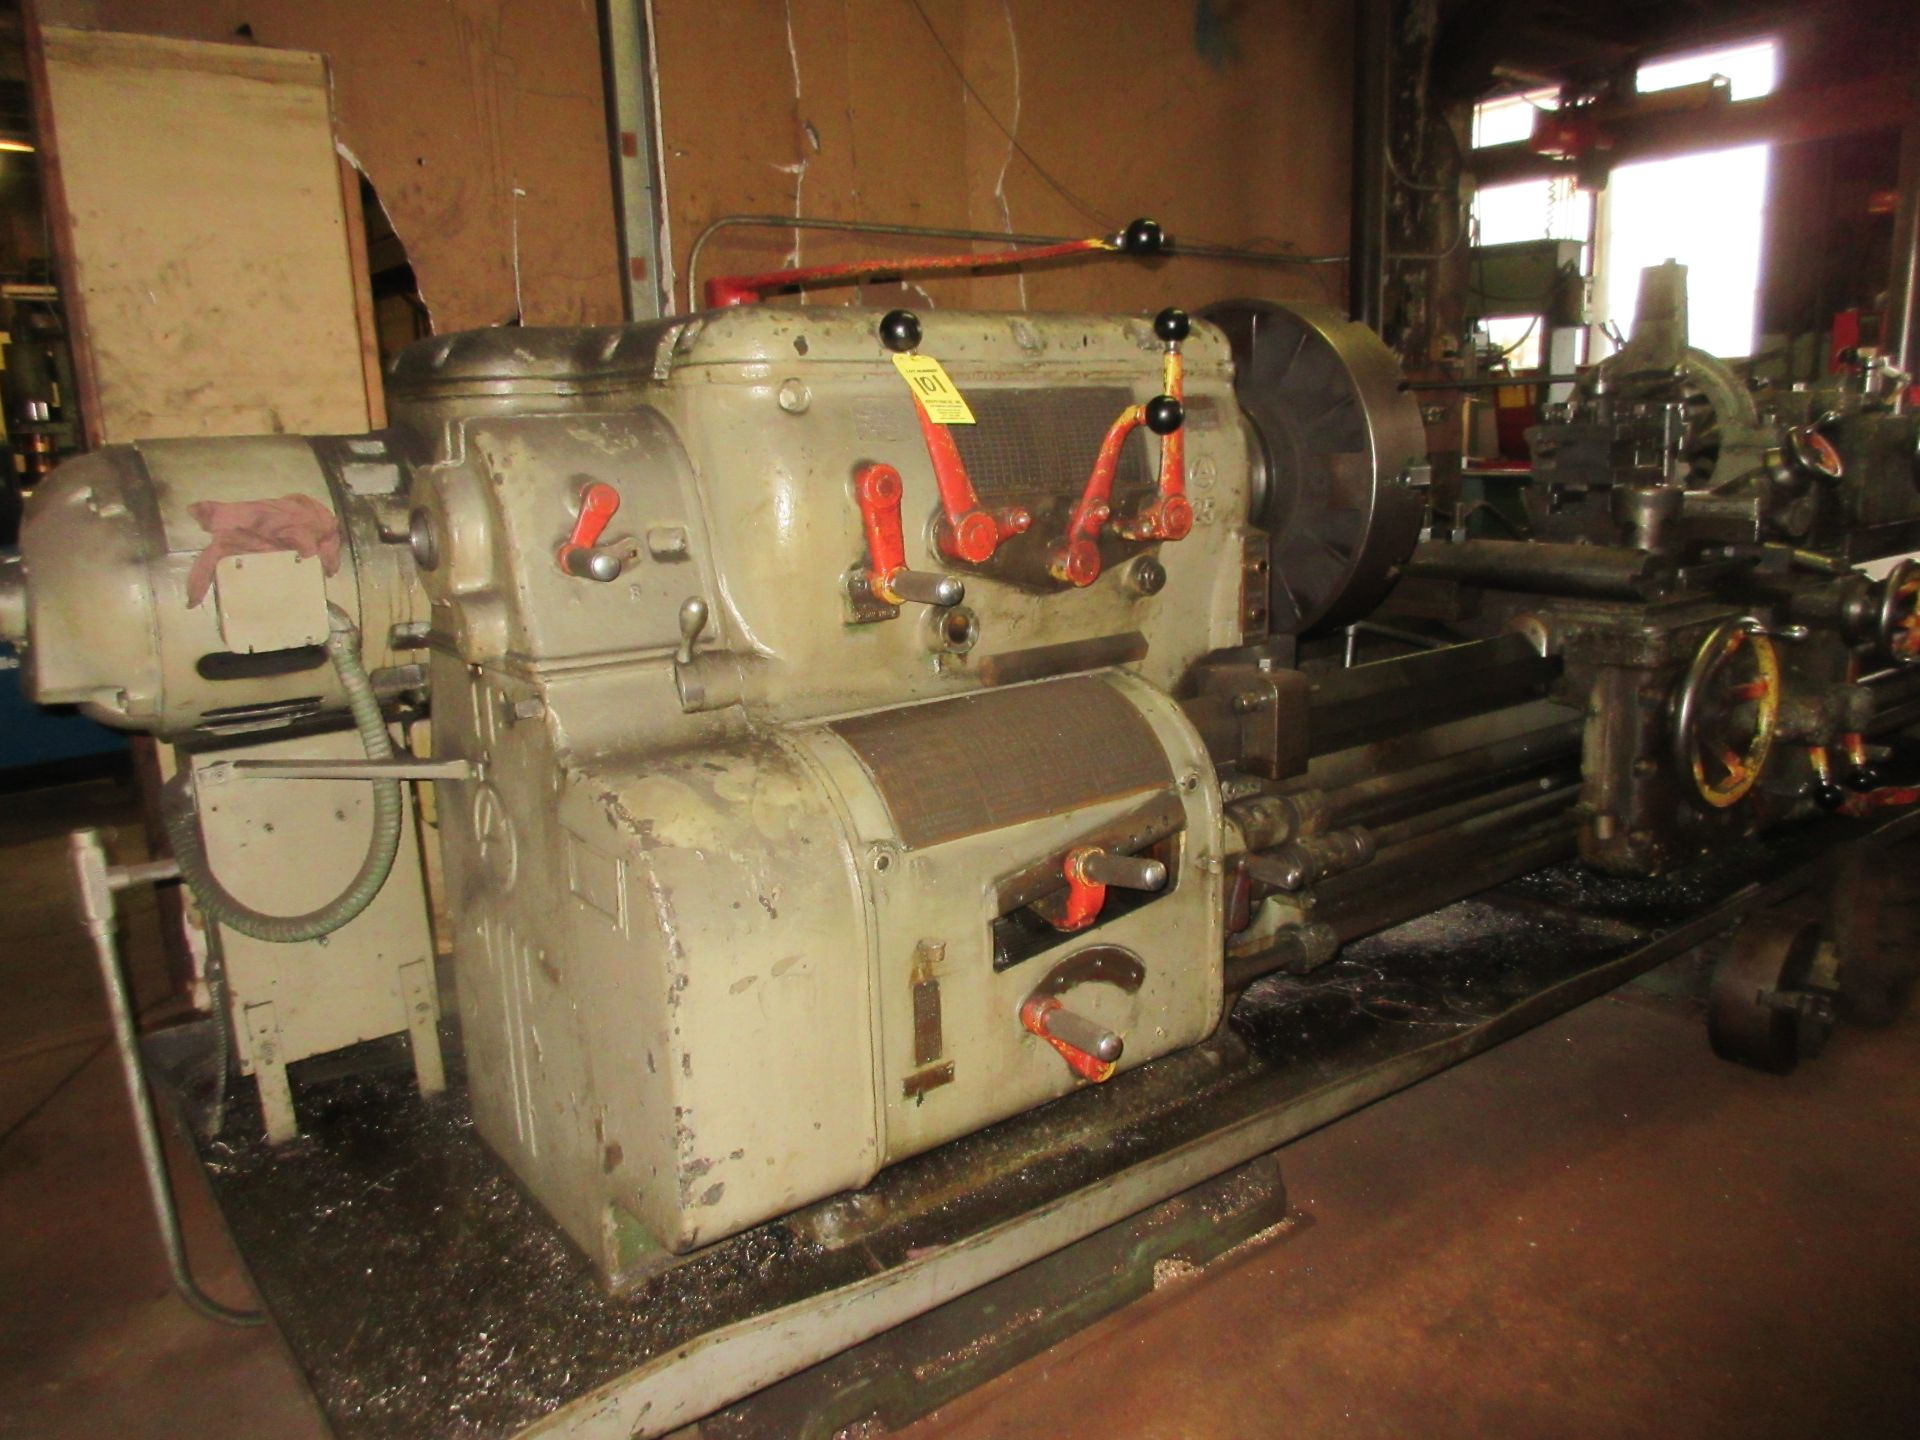 """(1) Axelson 25"""" X 96"""" Lathe S/N 24"""" 4 Jaw Chuck, Steady Rest & Taper Attachment, Tool Post - Image 2 of 5"""